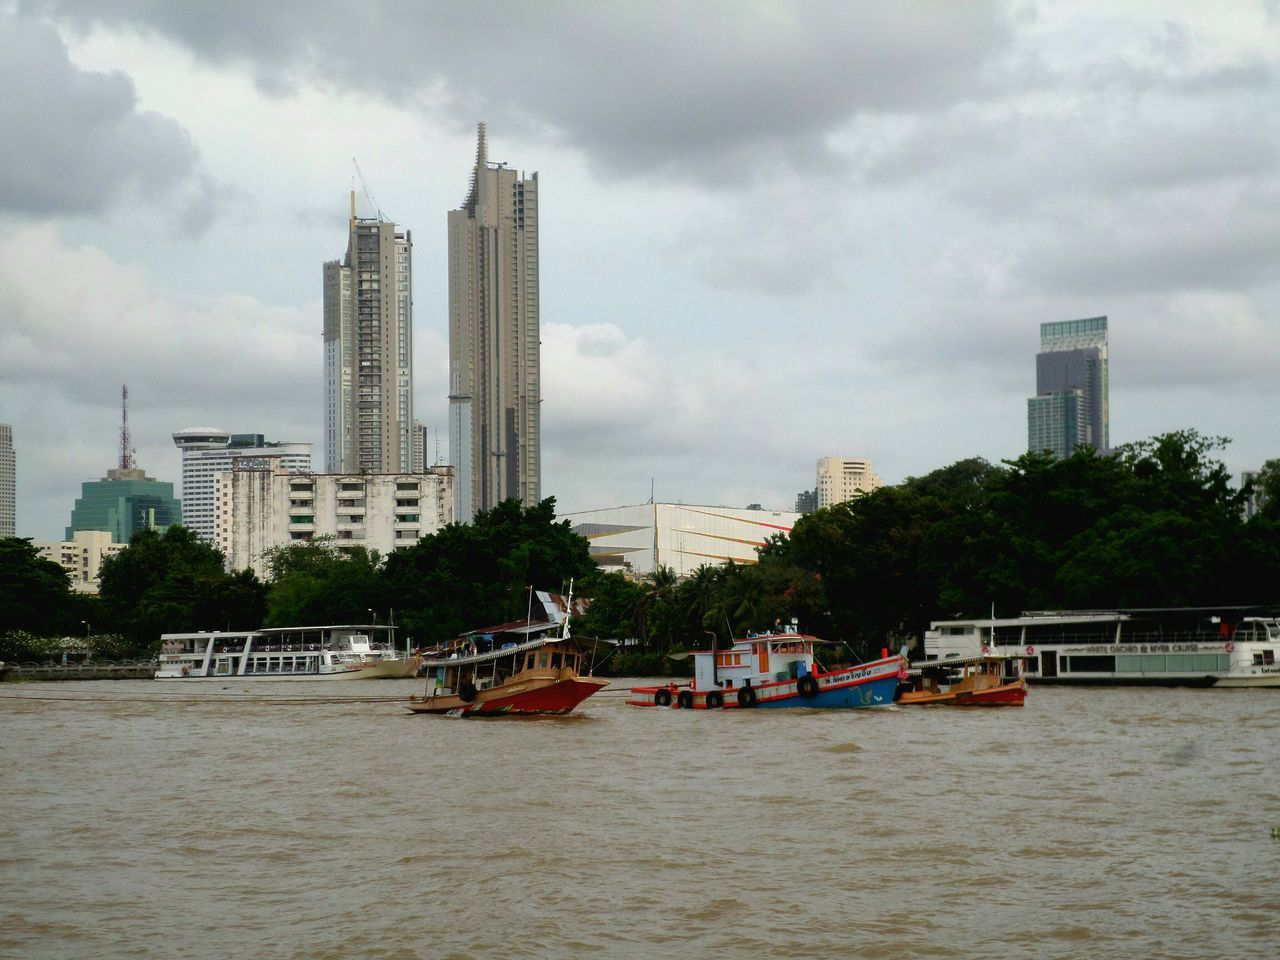 BOATS IN RIVER BY BUILDINGS AGAINST SKY